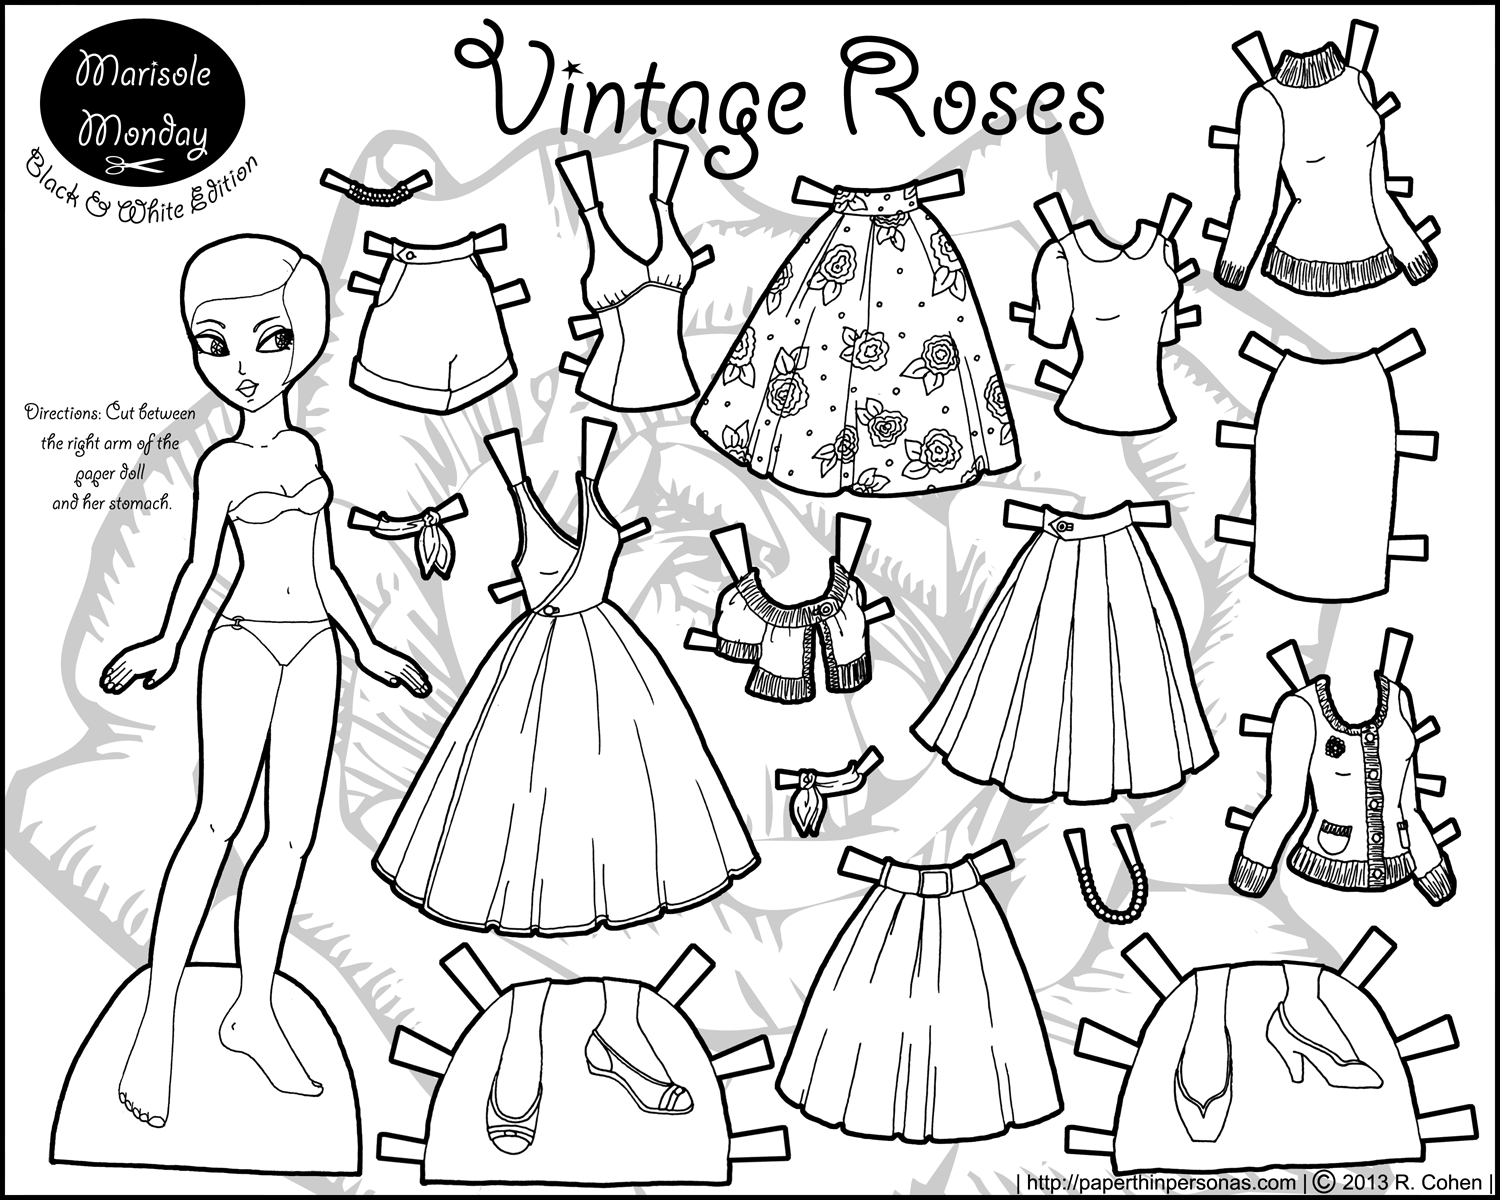 Marisole Monday Vintage Roses Paper Thin Personas